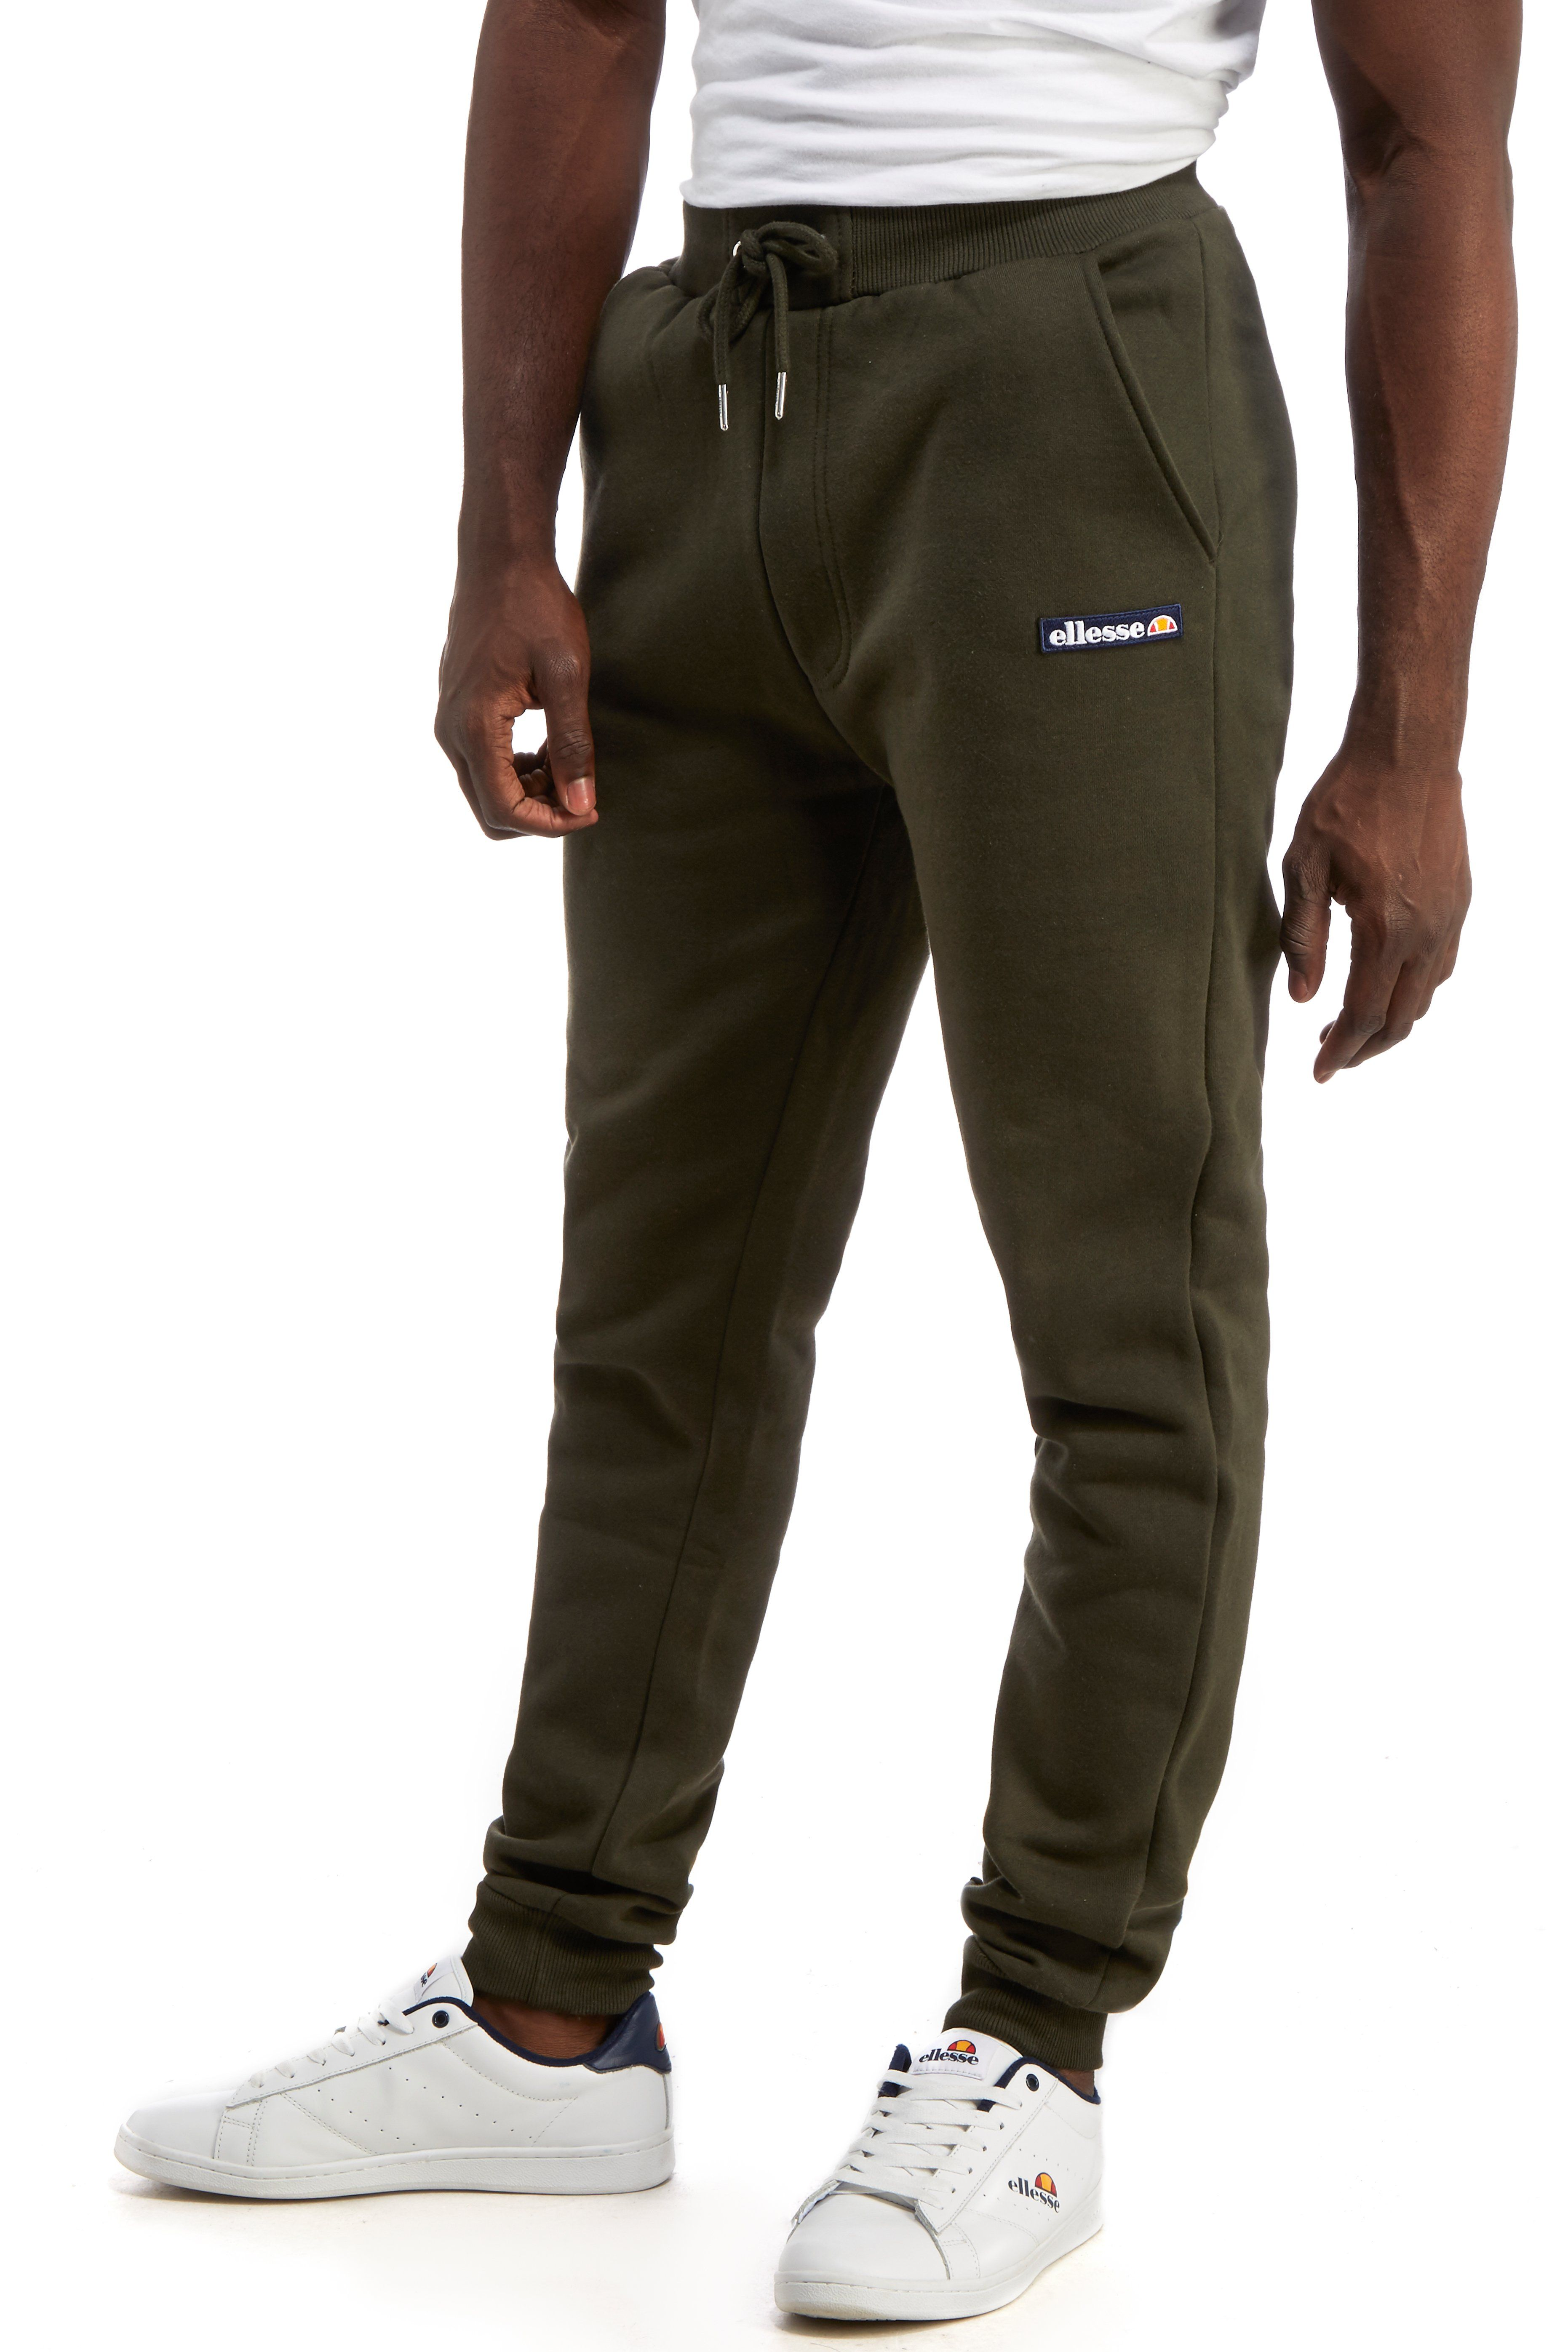 quality design 9d3da 03167 free shipping Ellesse Seroni Joggers   JD Sports. Staying comfortable and  looking good ...